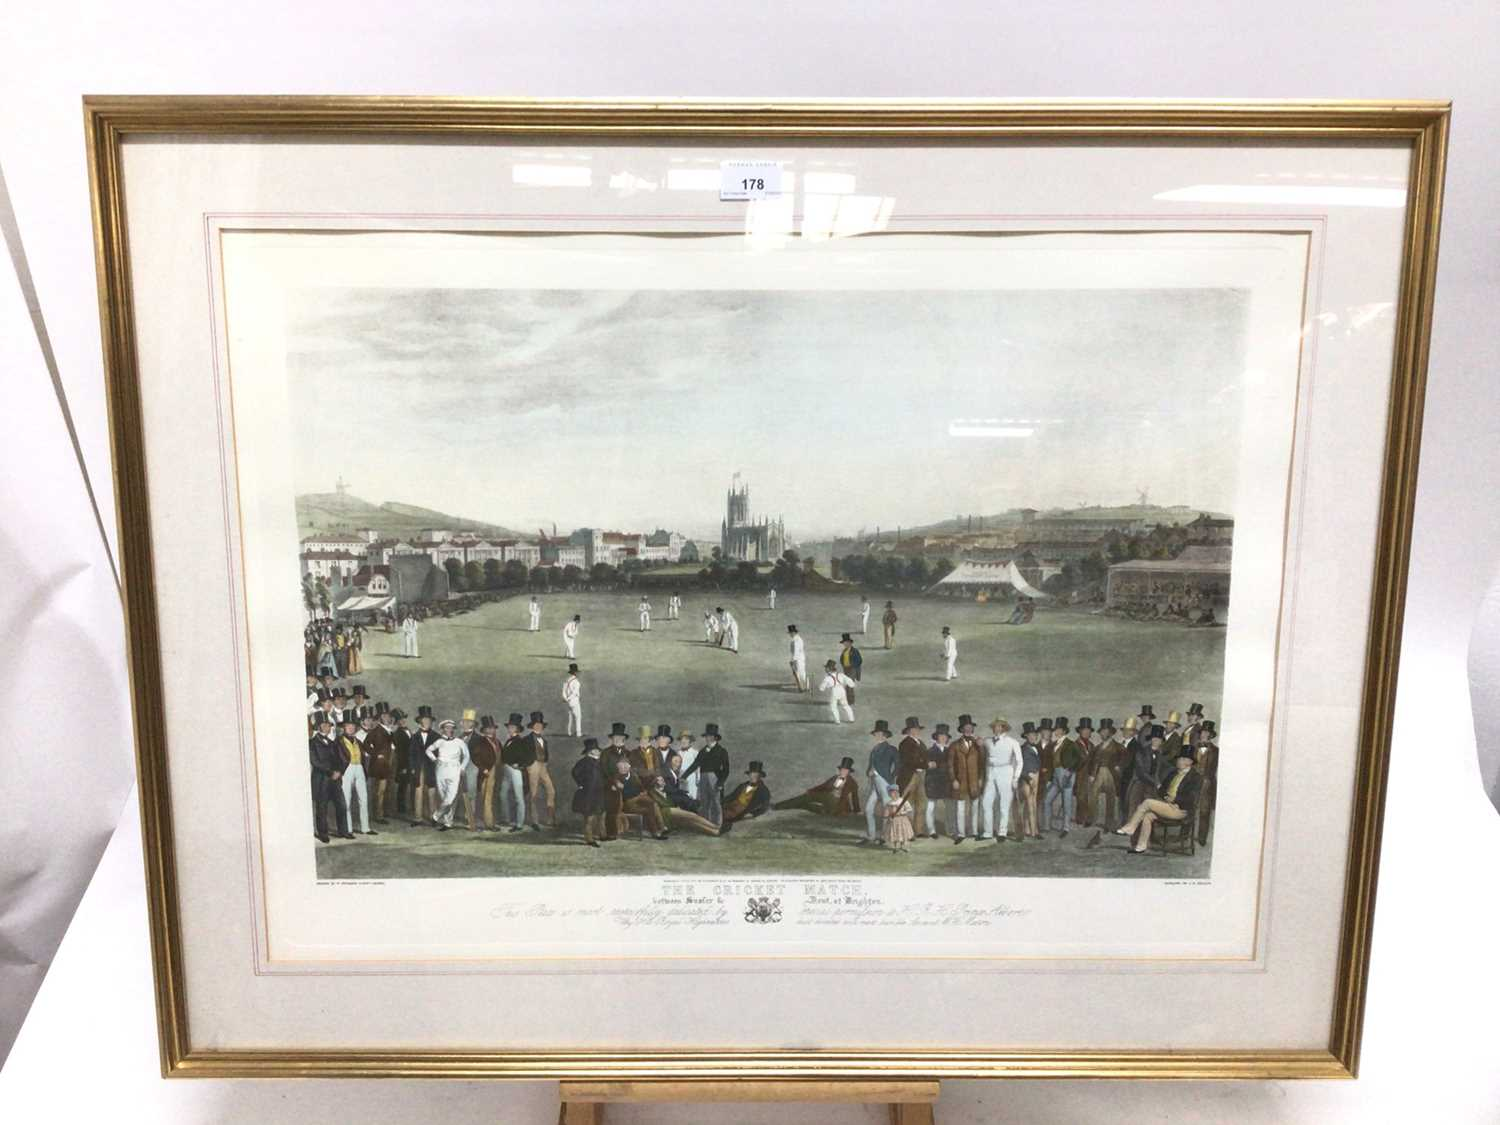 19th century-style coloured print - The Cricket Match between Sussex & Kent, at Brighton, 48cm x 66c - Image 2 of 8